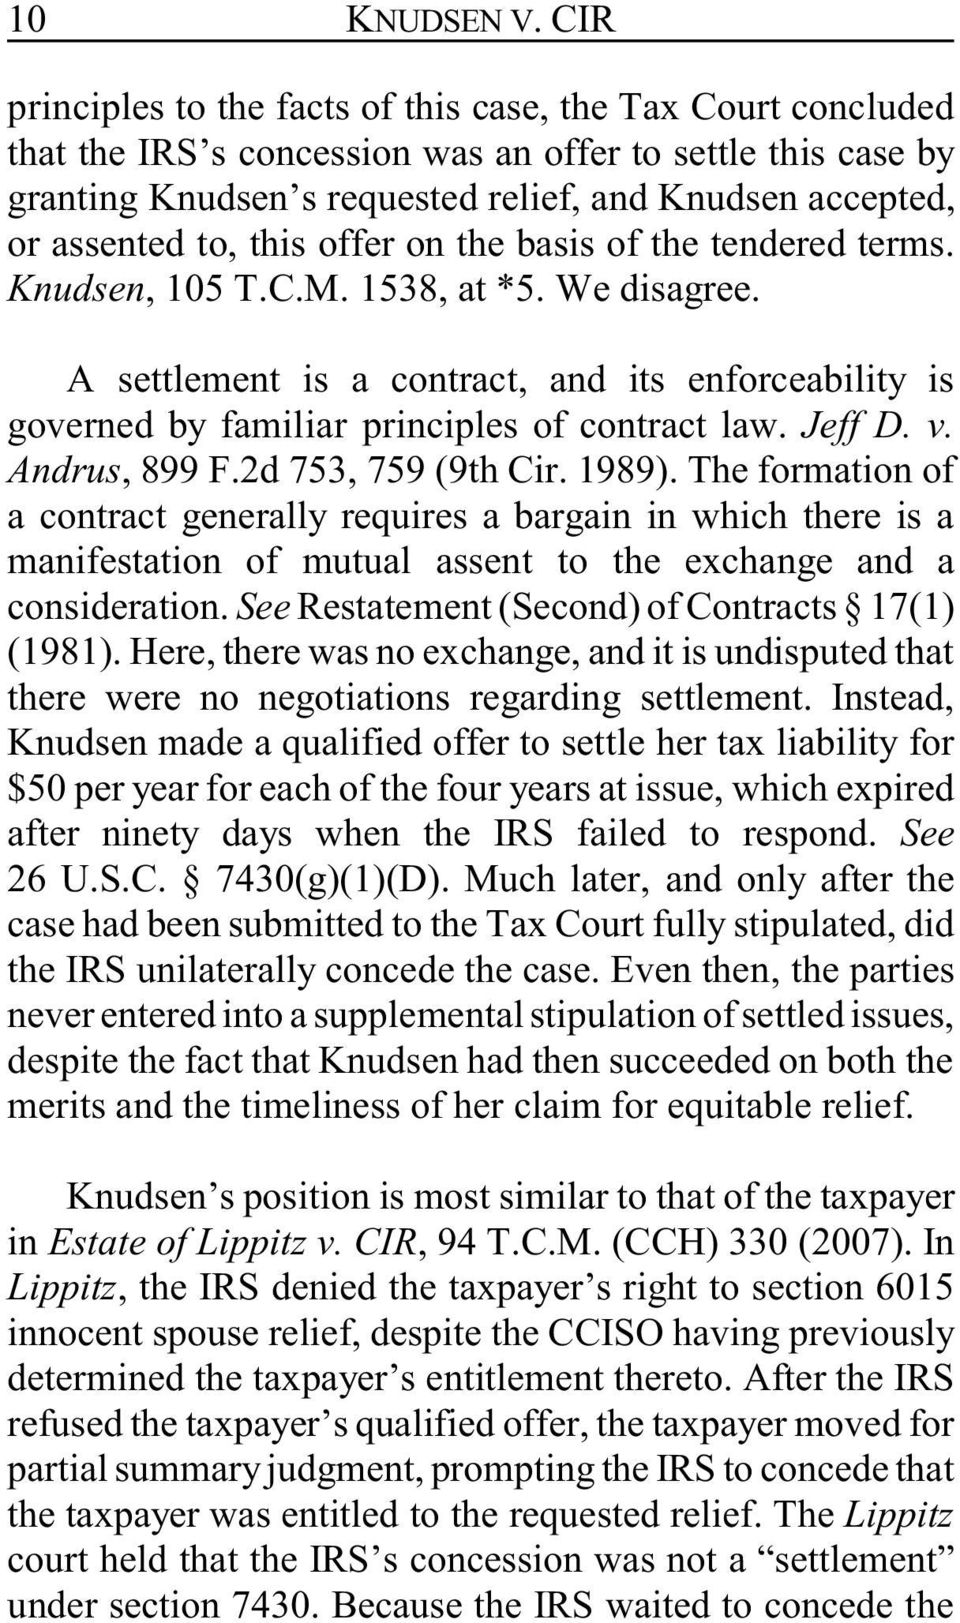 to, this offer on the basis of the tendered terms. Knudsen, 105 T.C.M. 1538, at *5. We disagree. A settlement is a contract, and its enforceability is governed by familiar principles of contract law.